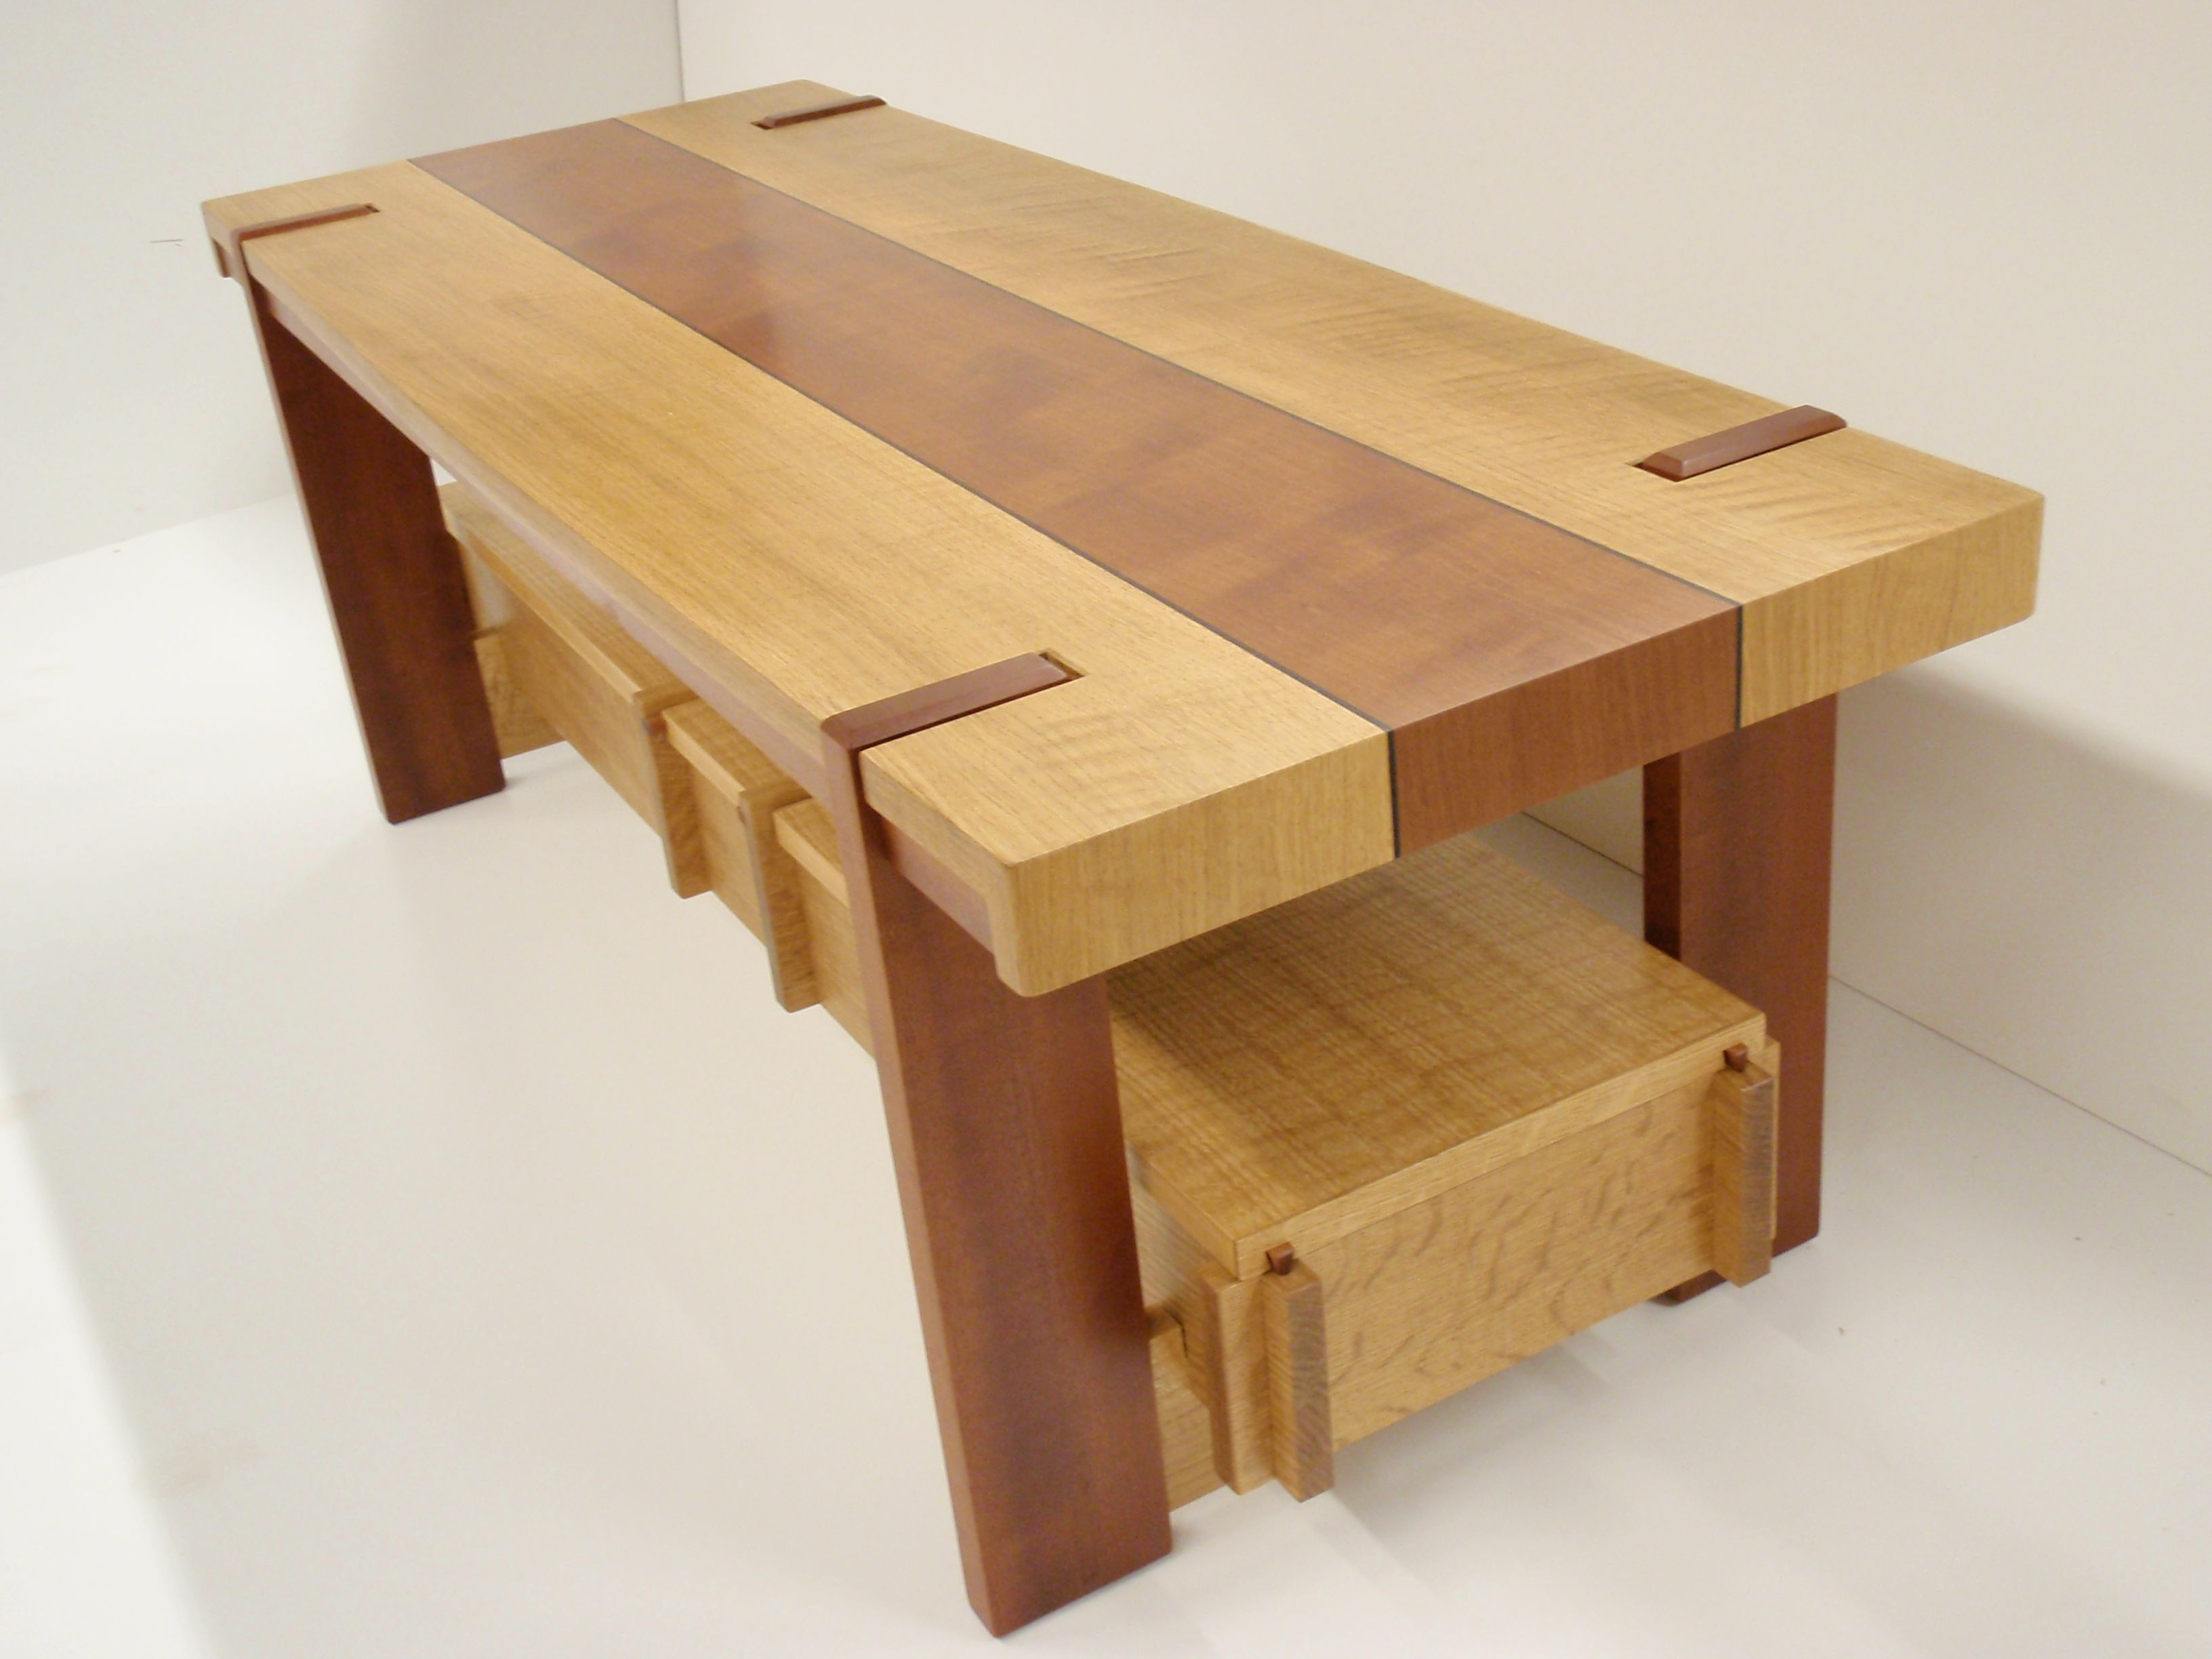 Cofee table in white oak and unknown secies with ebony inlays we love dc - Furnitur design ...